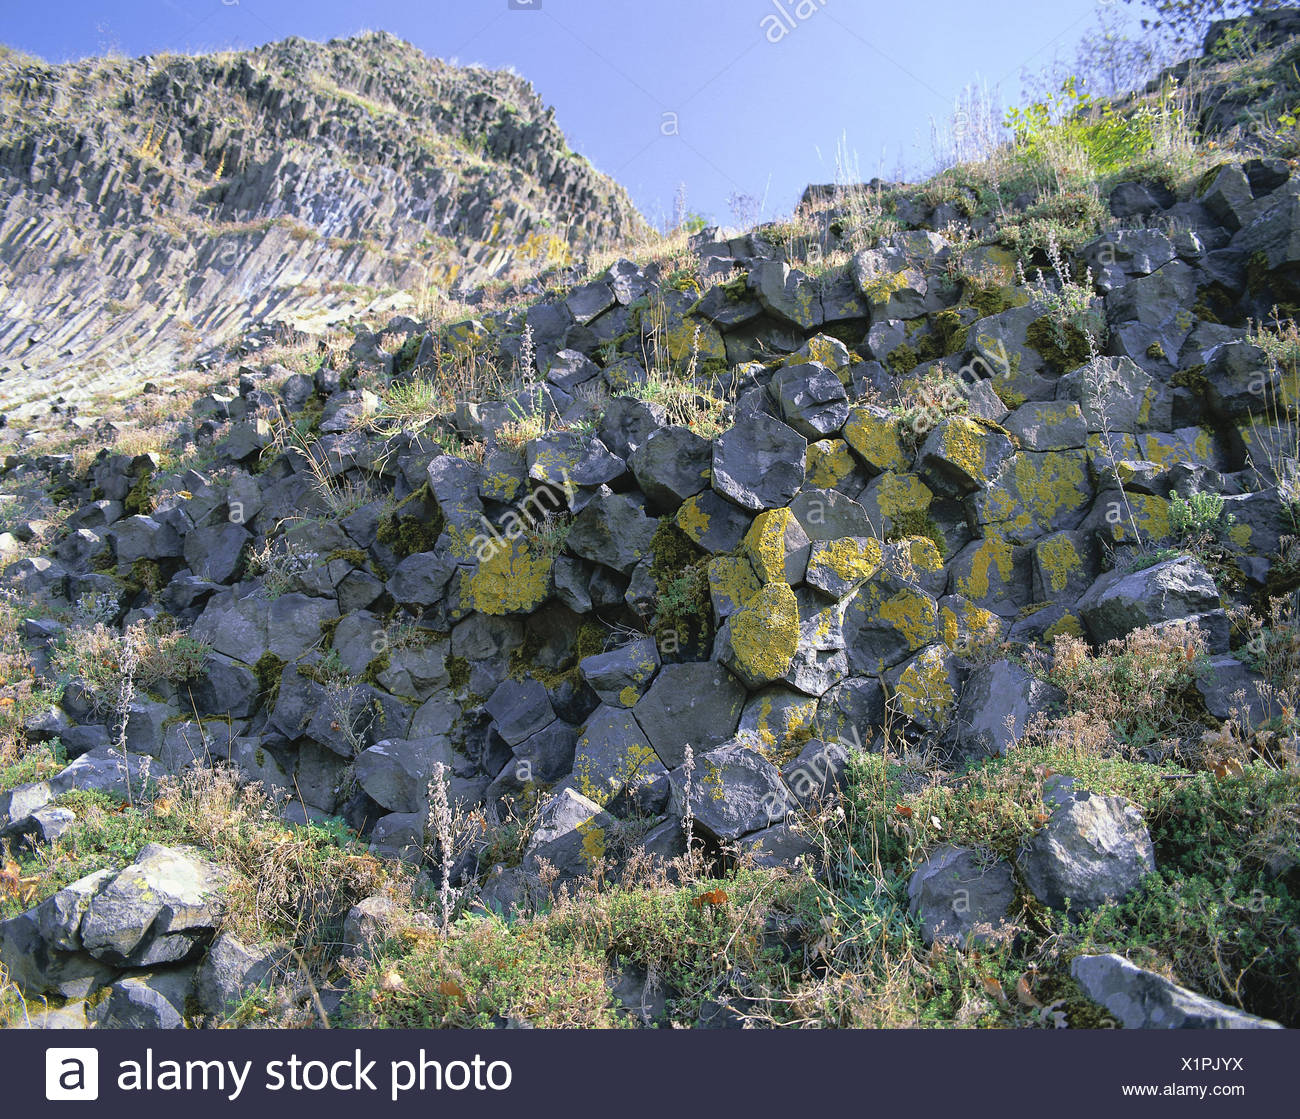 Germany, Bavaria, Upper Palatinate, park stone, 'high park stone', detail, scenery, mountain, rock formation, basalt cone, basalt pillars, basalt, basalt rock, rock structure, rock forms, pillar structures, mehreckig, geotop, geology, basalt wall, place of interest, gelogisch, - Stock Image